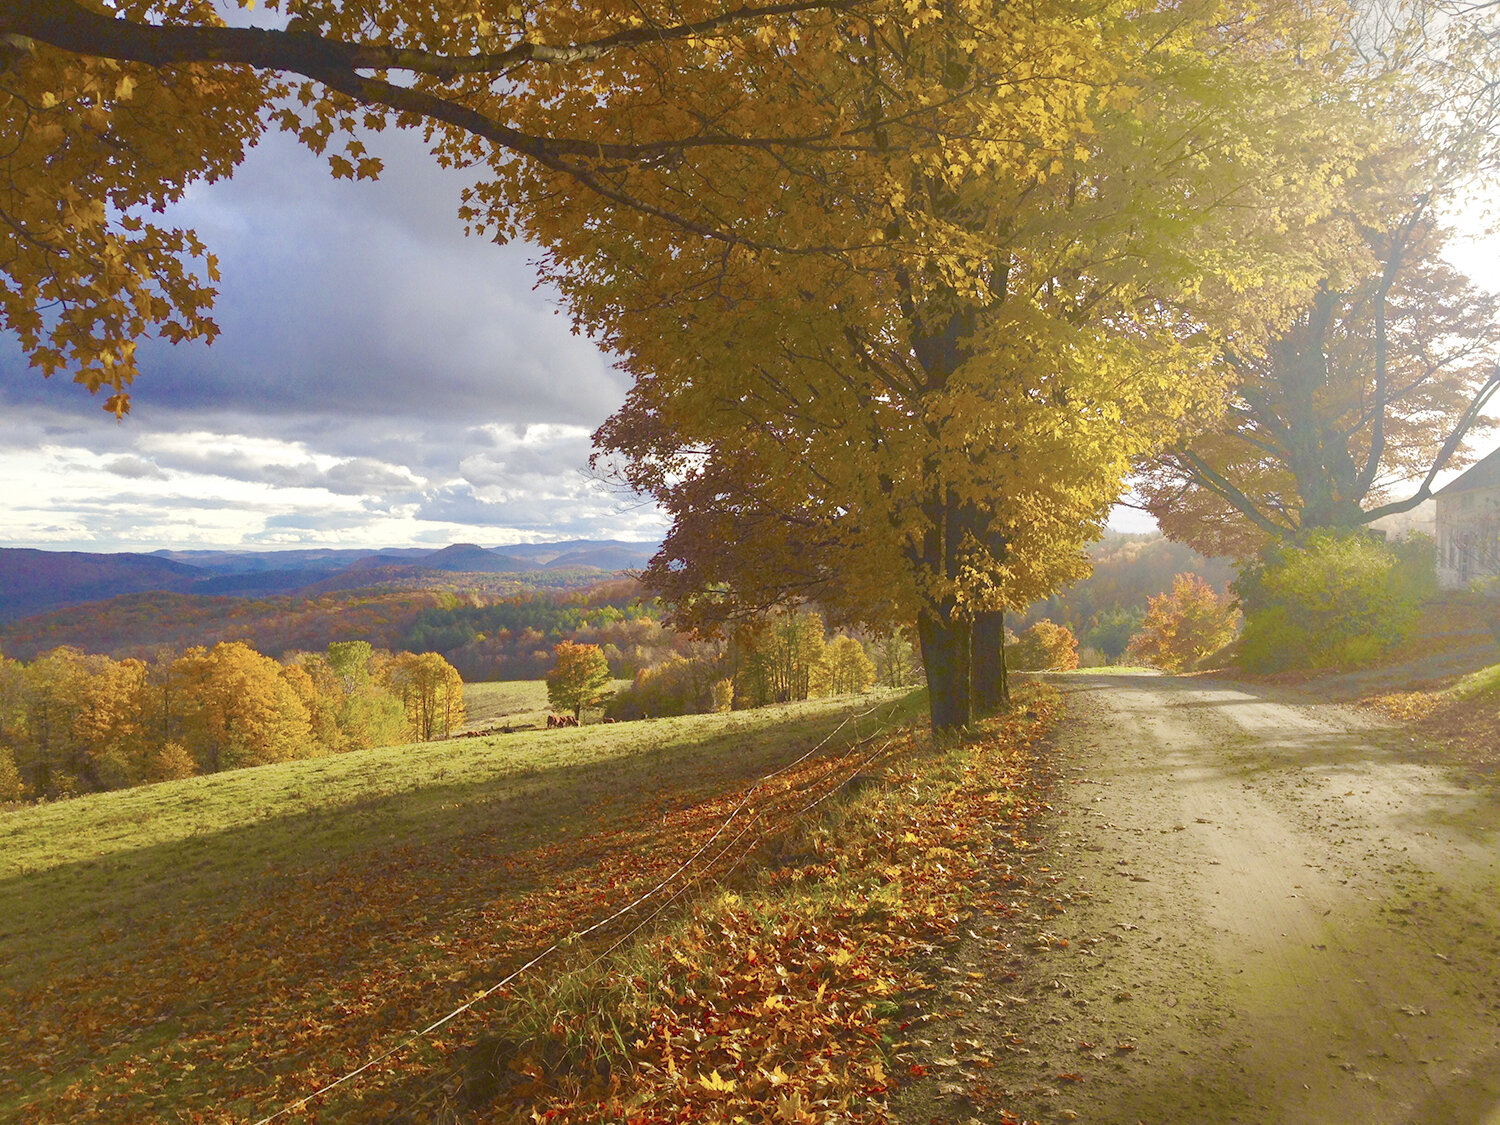 Pretty-fall-colors-on-a-Vermont-dirt-road.-Photo-by-Shawntae-Stillwell.jpg